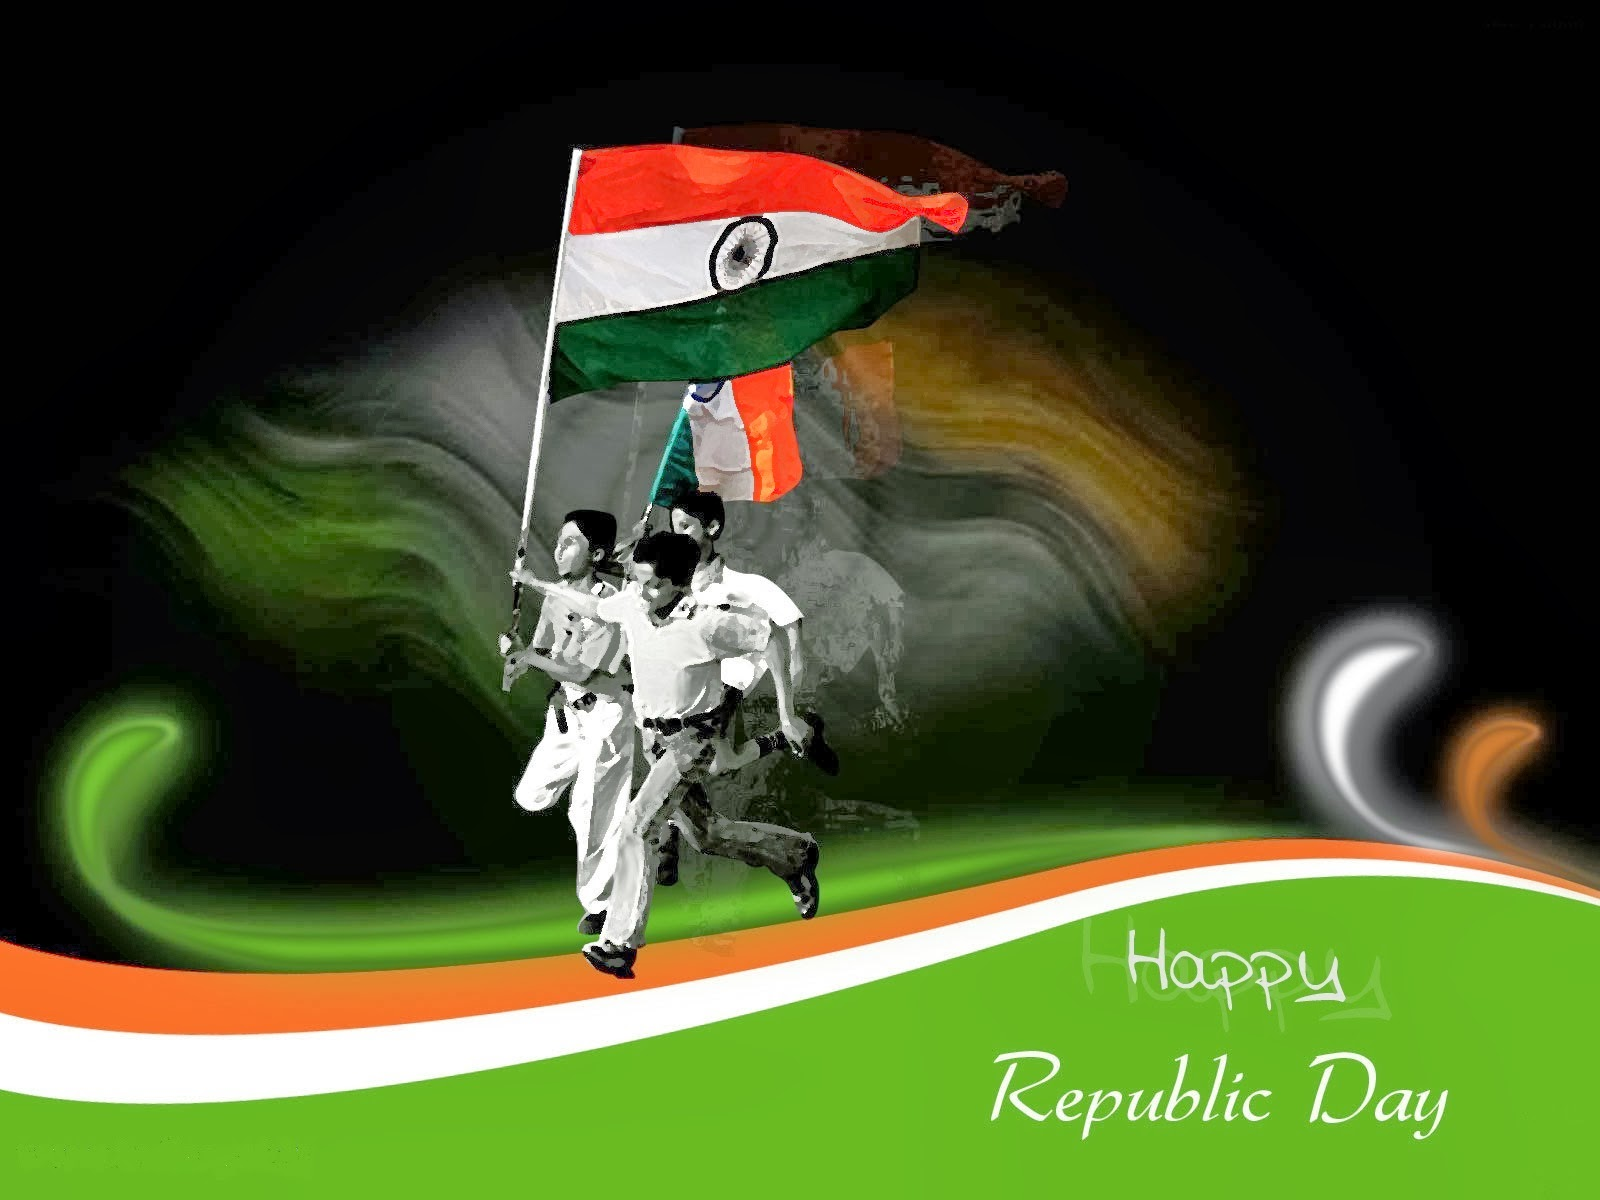 Republic Day 2019 Images for Facebook